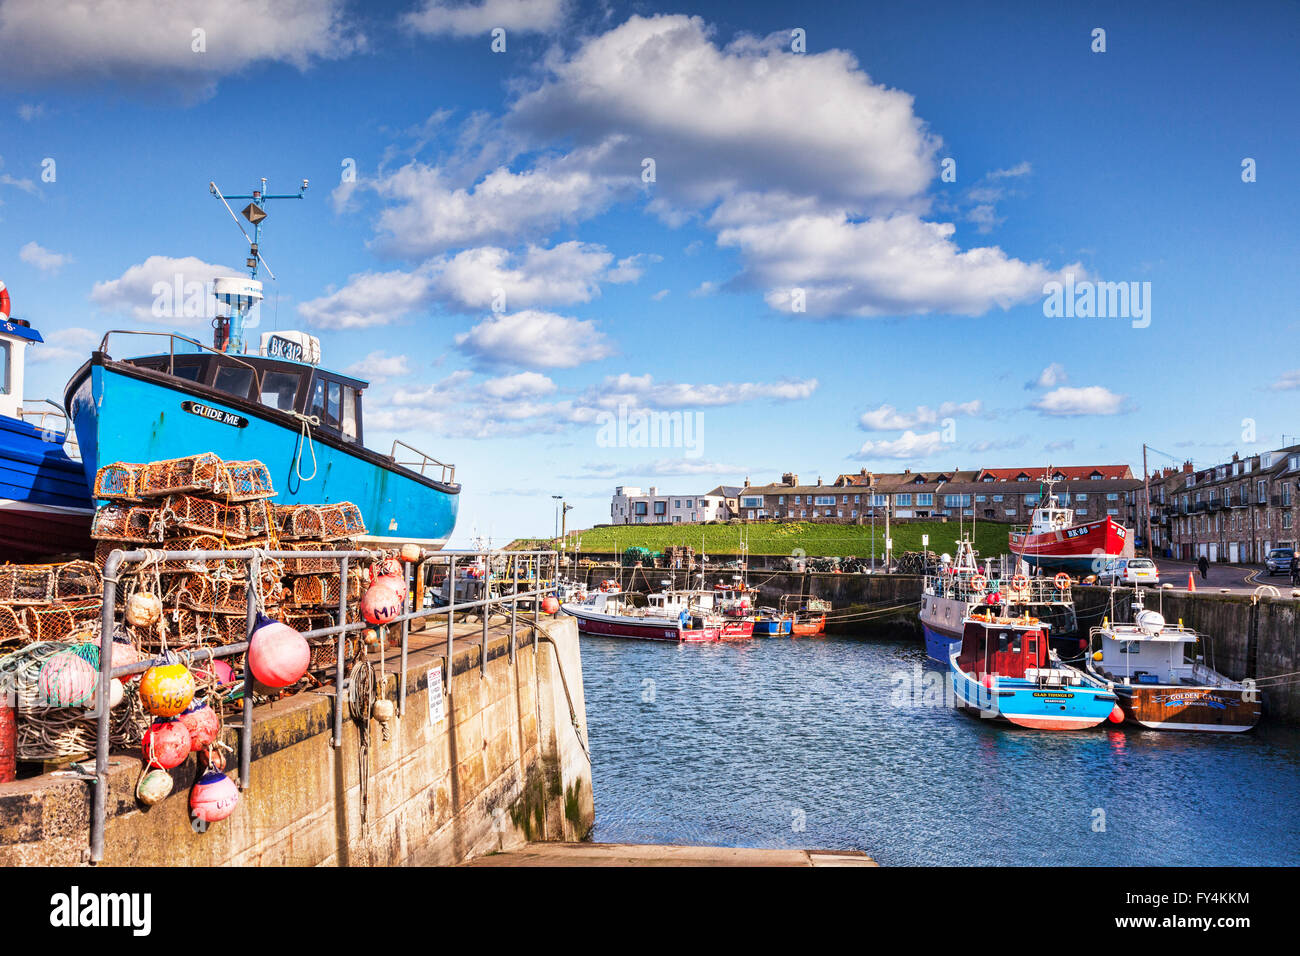 The Harbour and town at Seahouses, Northumberland, England, UK - Stock Image